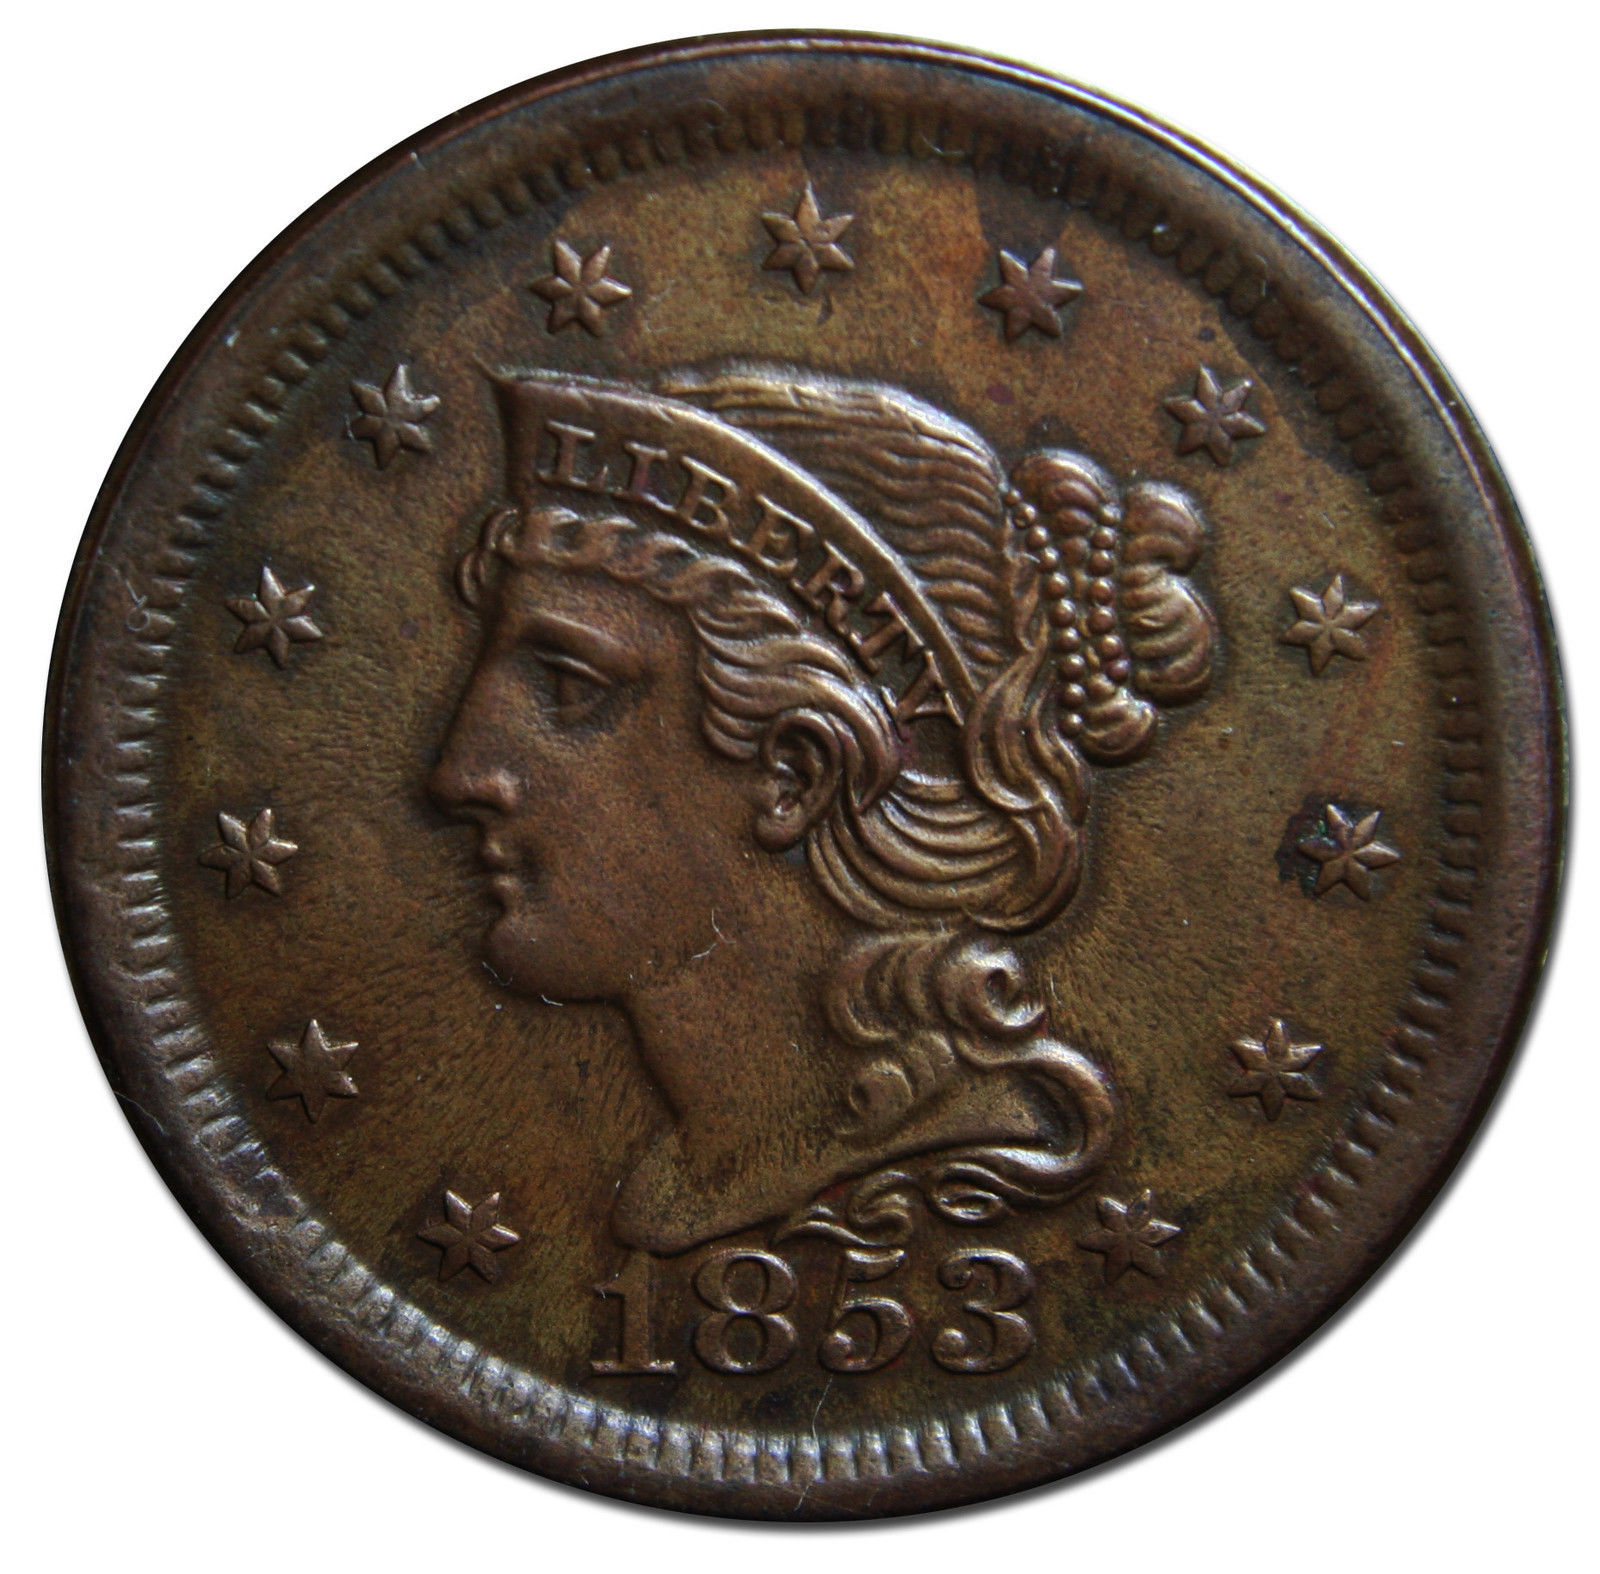 1853 Large Cent Liberty Braided Hair Head Coin Lot # MZ 3075